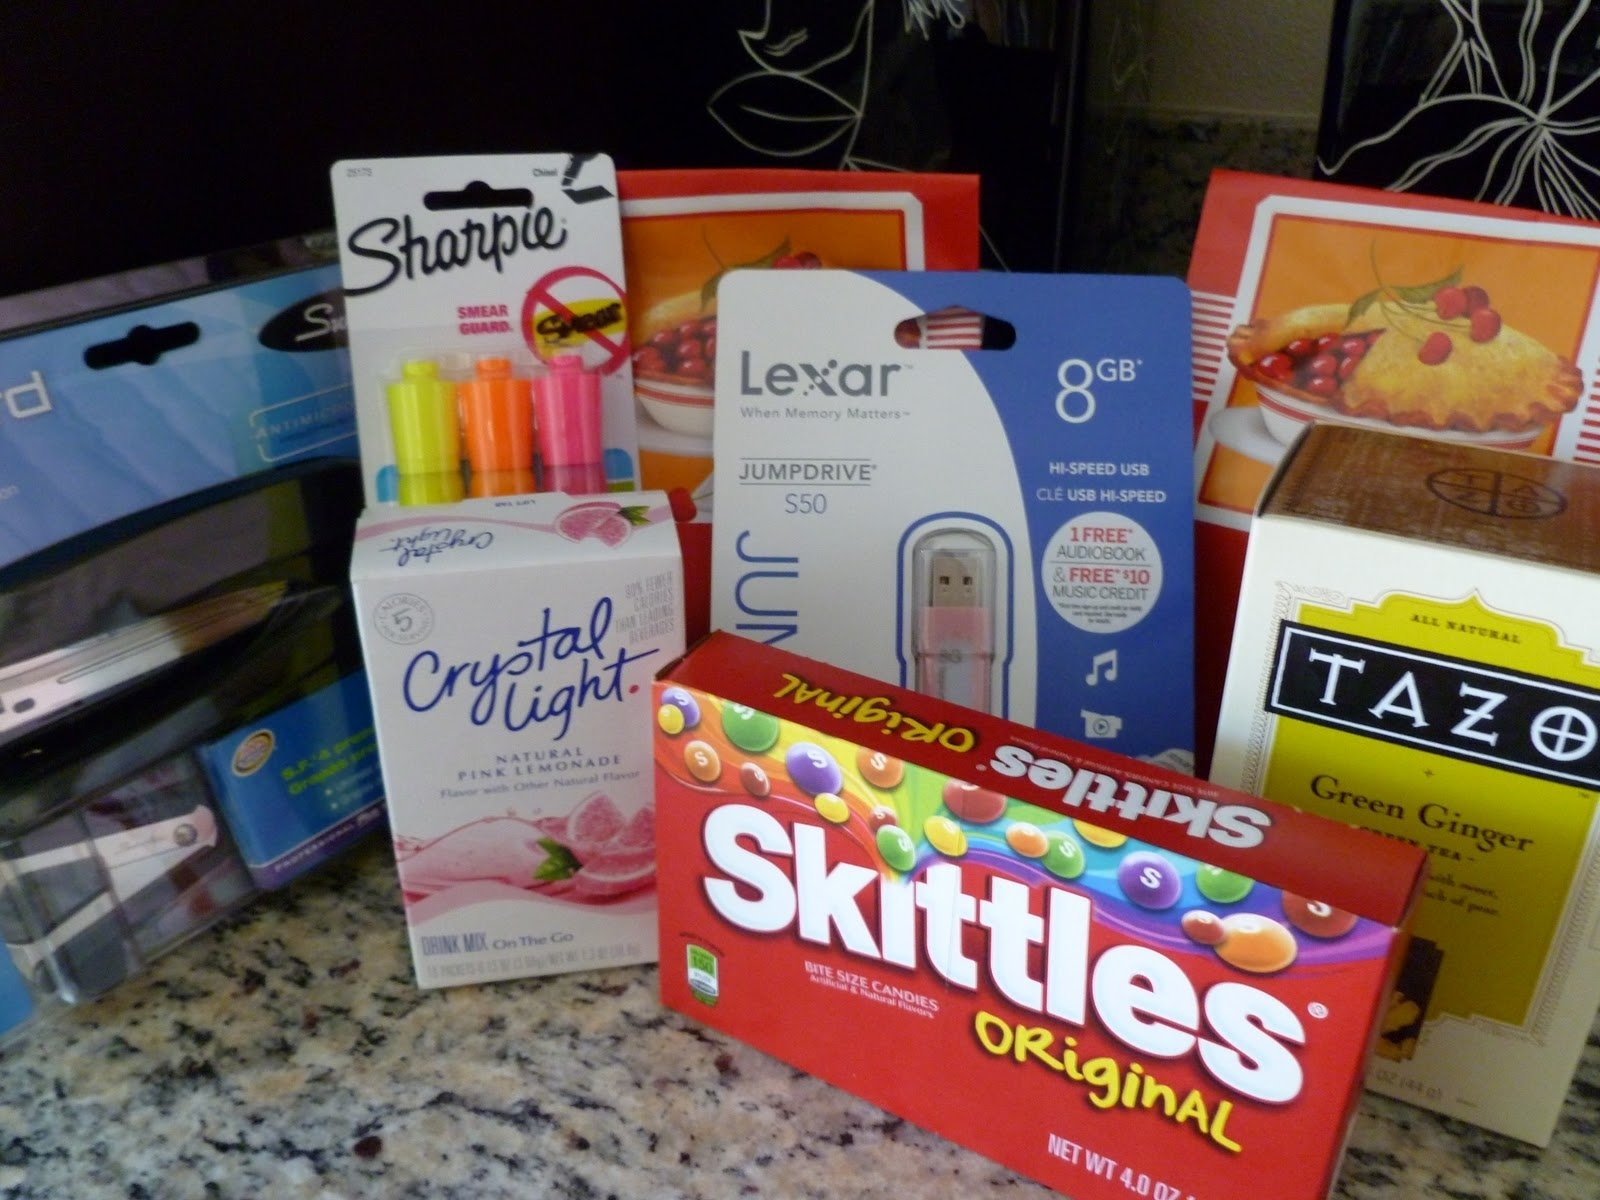 10 Attractive Final Exam Care Package Ideas advice for parents constructing the perfect care package 1 2021